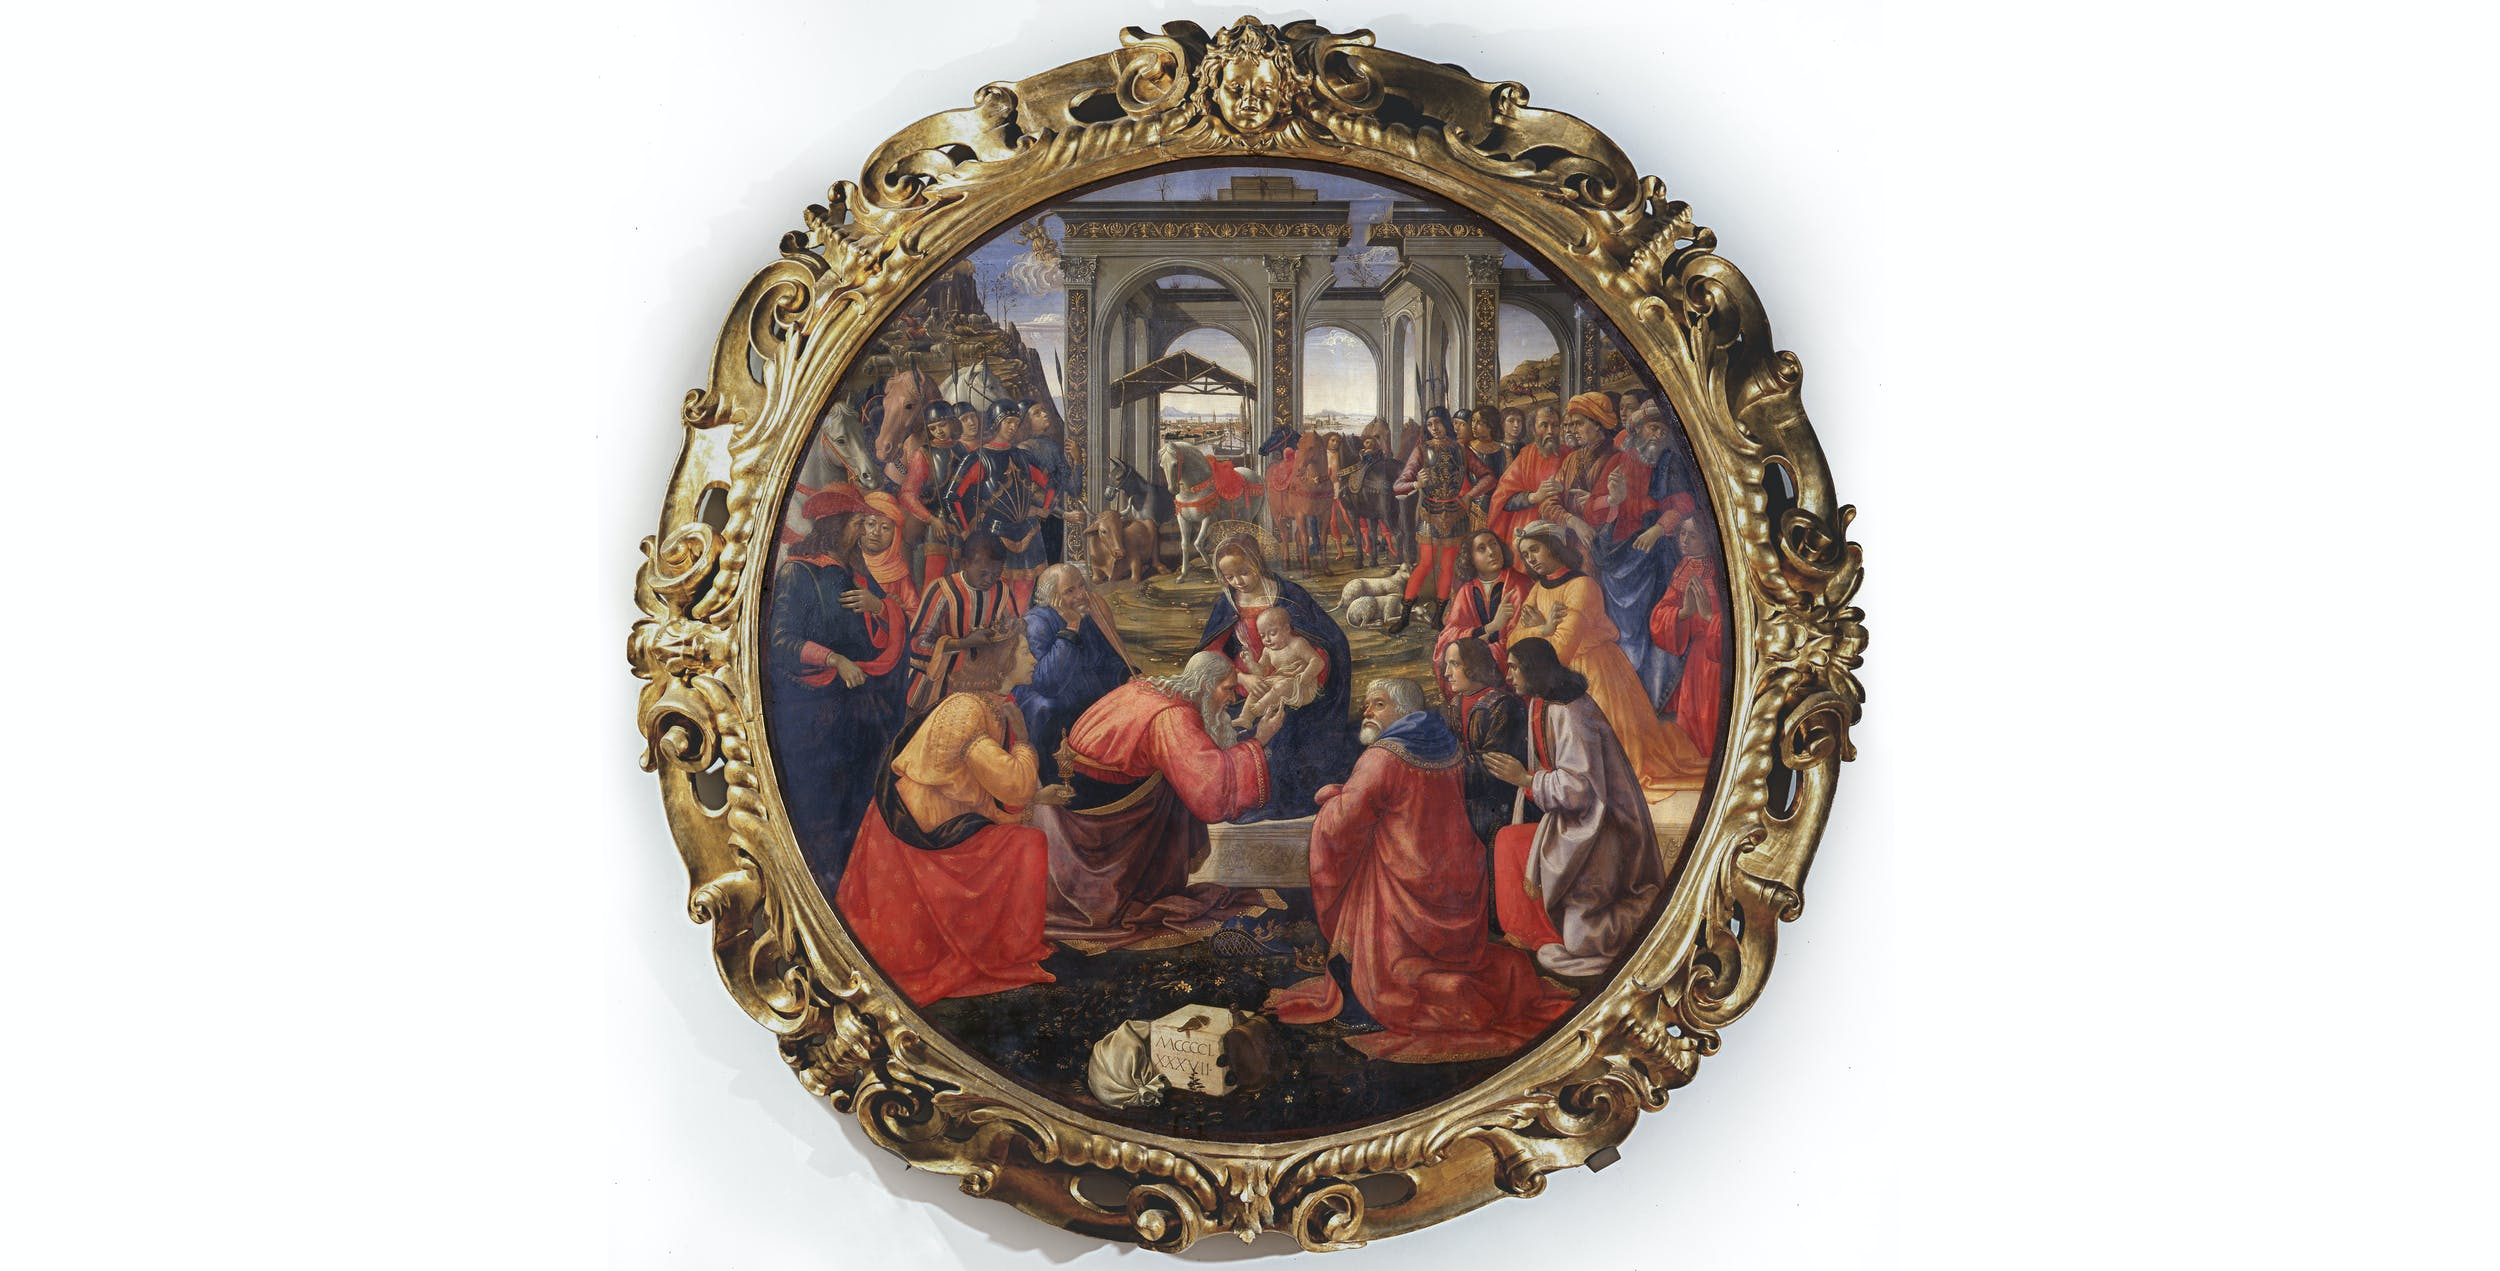 Domenico Ghirlandaio, Adorazione dei Magi I Domenico Ghirlandaio, Adoration of the Magi